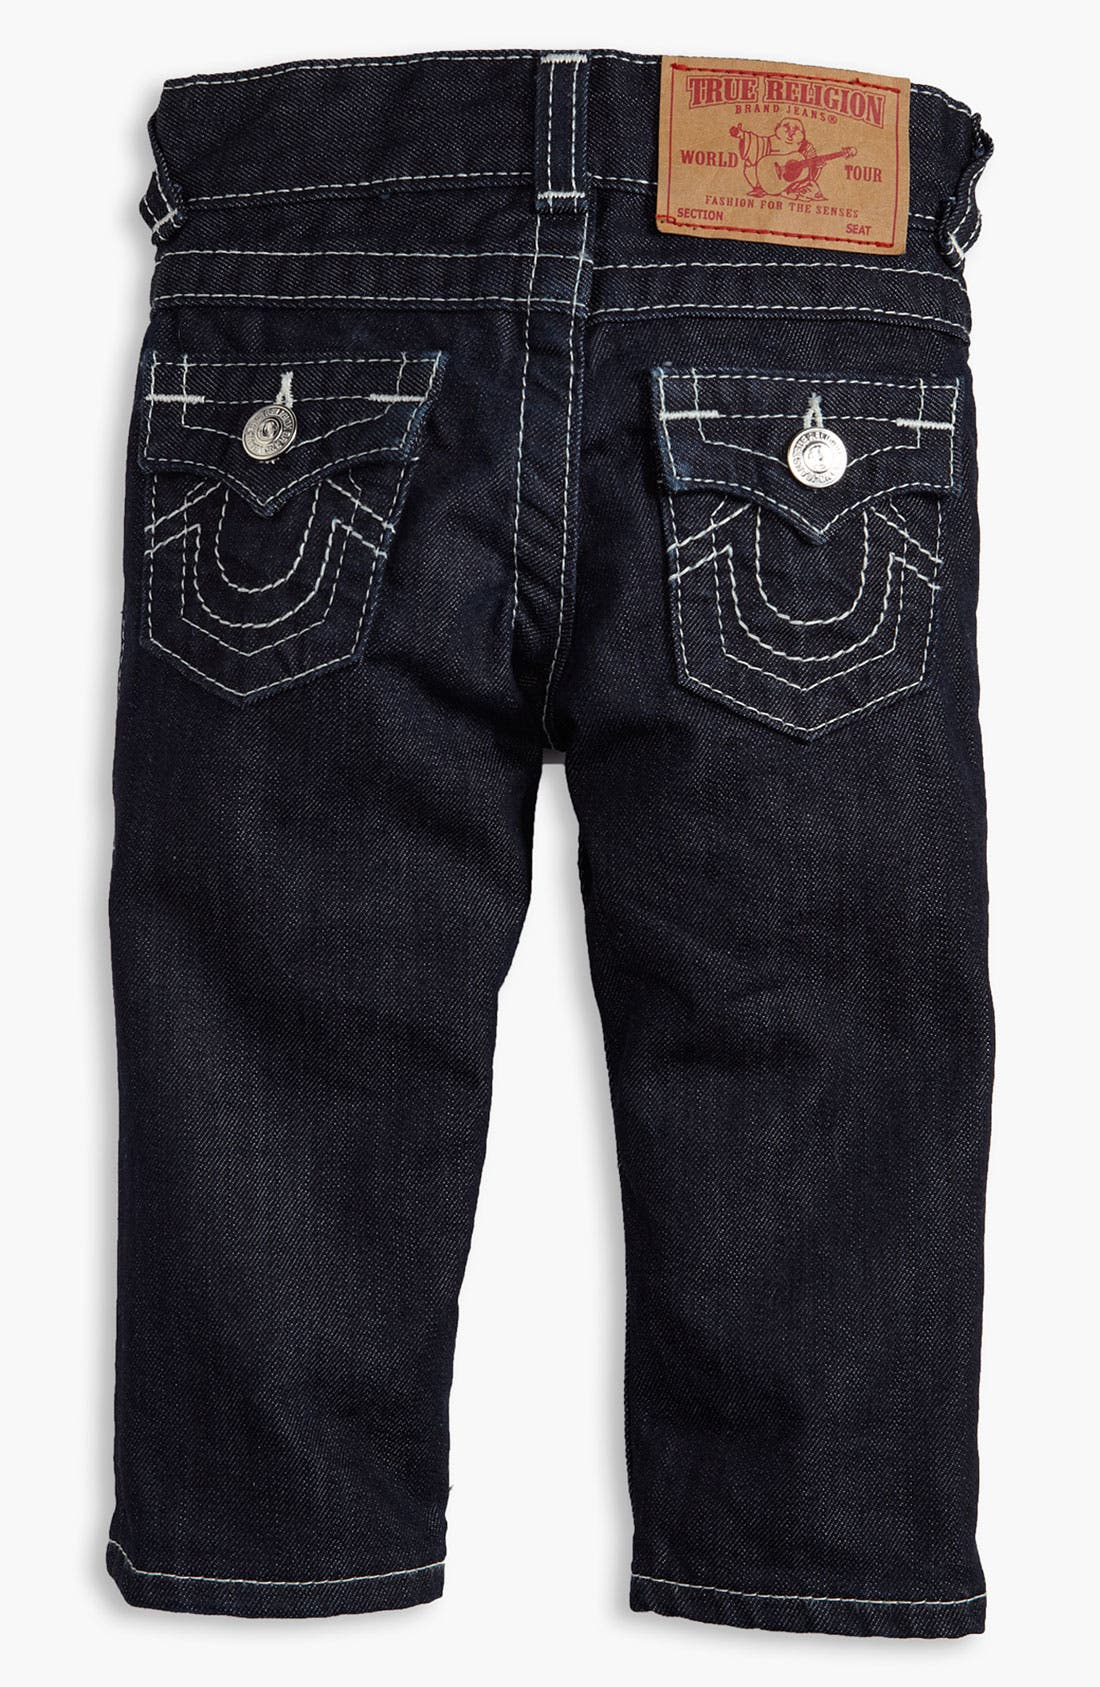 Main Image - True Religion Brand Jeans Straight Leg Jeans (Infant)